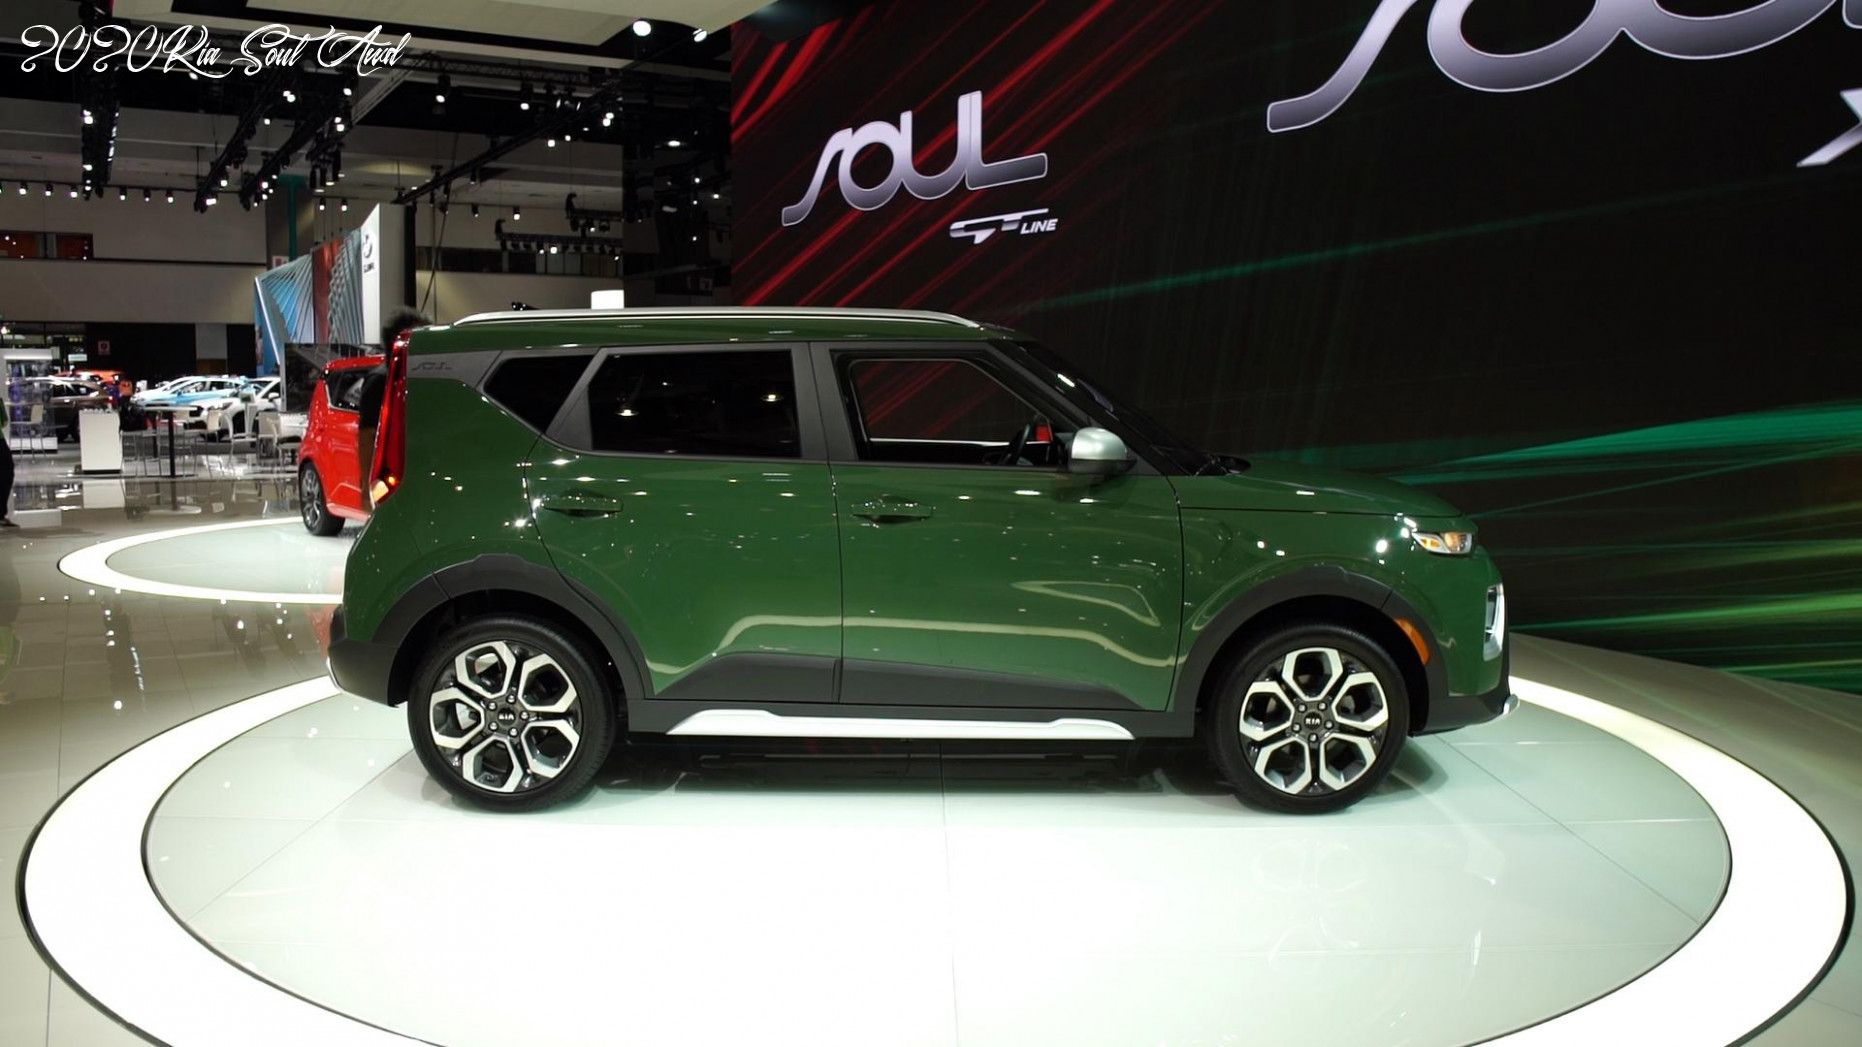 2020 Kia Soul Awd First Drive In 2020 Kia Soul Kia Kia Soul Price